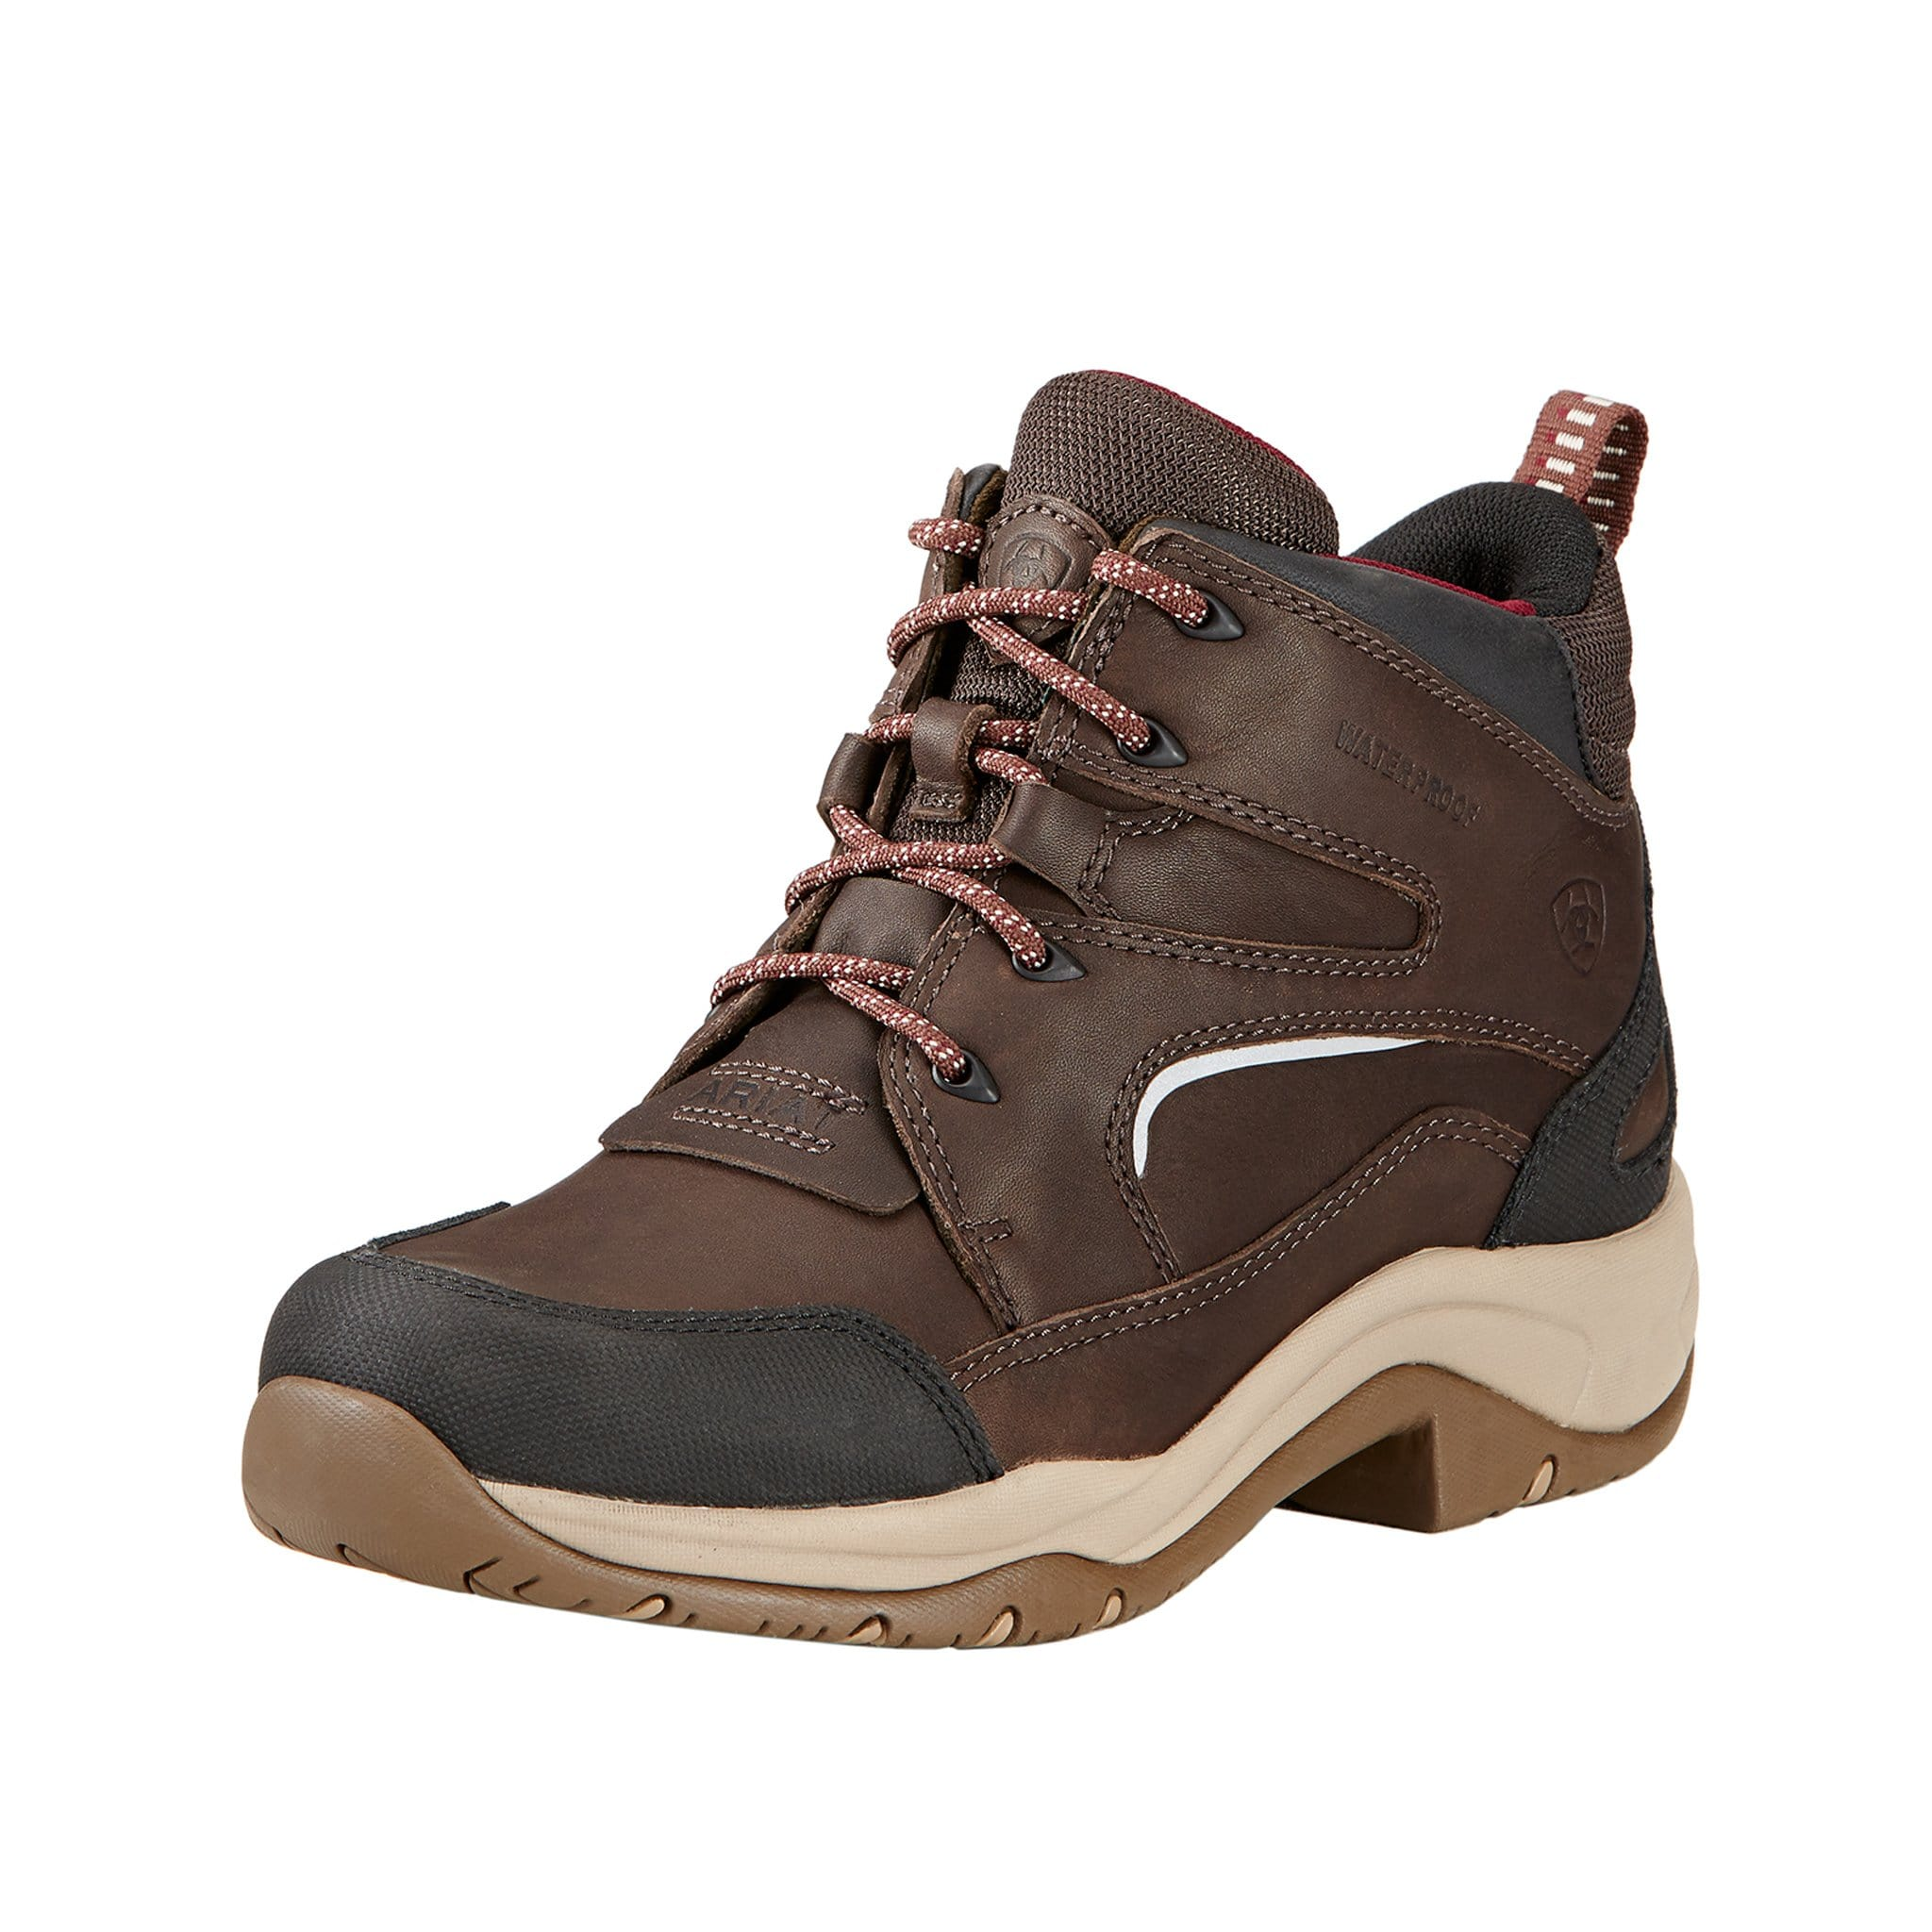 Ariat Telluride II H2O Boot in Dark Brown 10017306